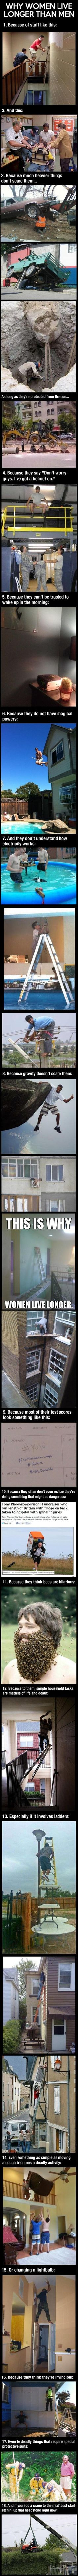 Here Are 18 Reasons Why Women Live Longer Than Men... - qm stories & news.